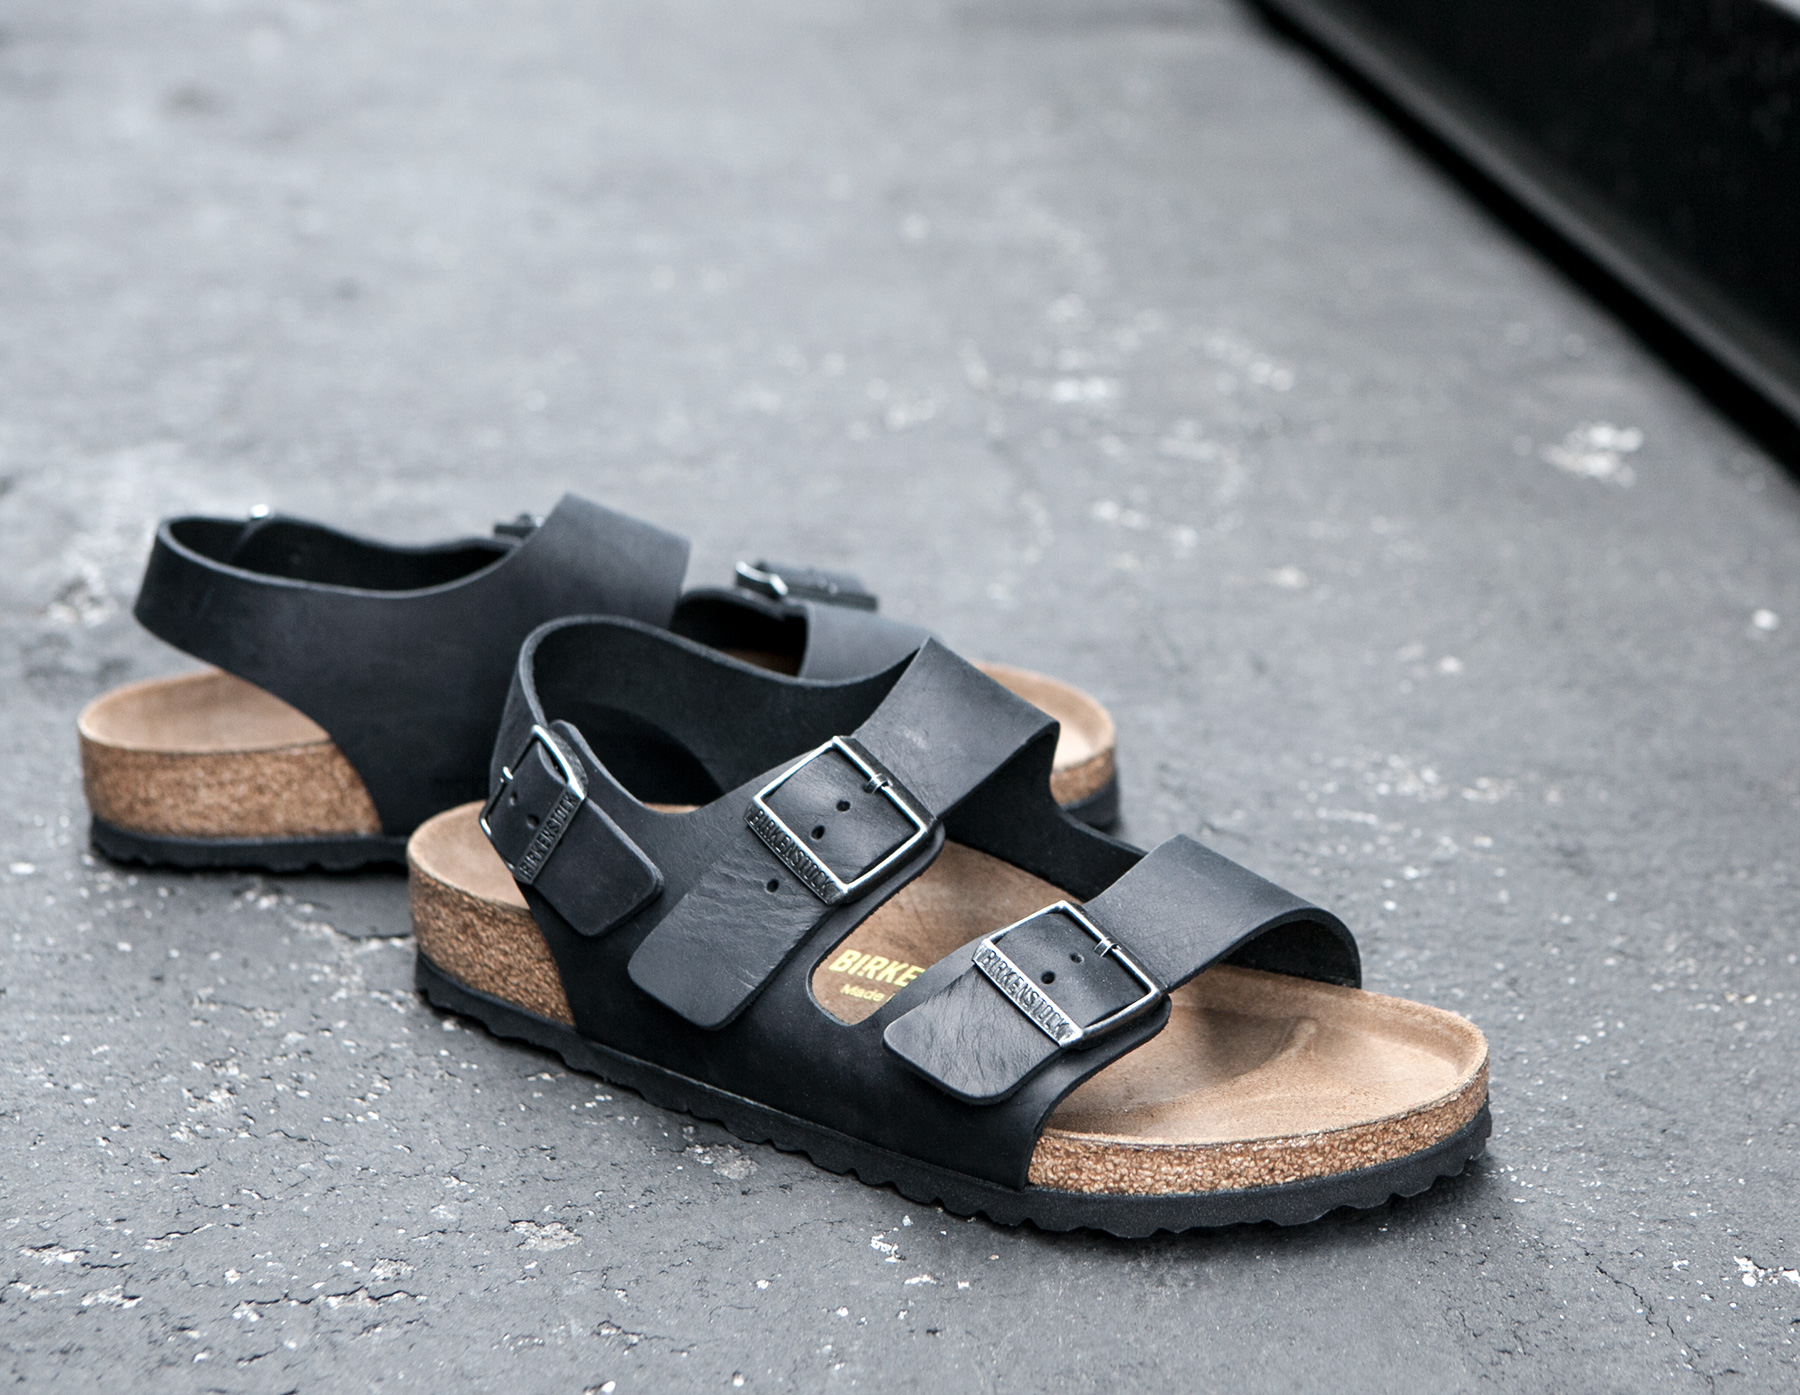 f1008a04e Lyst - James Perse Birkenstock Mens Milano Oiled Leather Sandal in ...